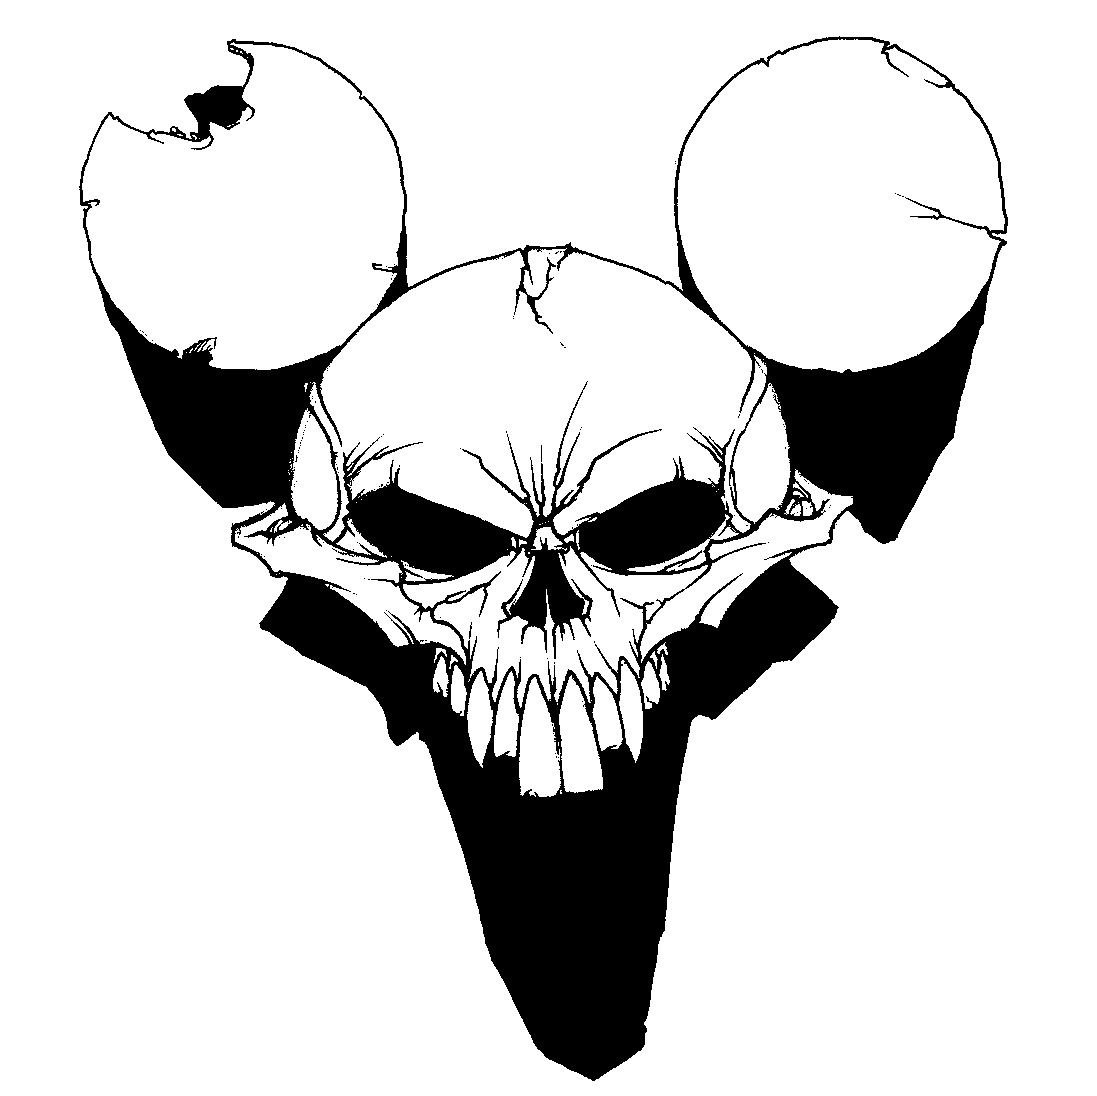 Good N Evil Die Cut Vinyl Decal Pv1095 moreover Ajegt5azkhbbj31b moreover Totenkopf Wandtattoo Skull Walltattoo MO08 likewise Pumpkin Coloring Pages Collections 2011 as well Search. on scary evil music